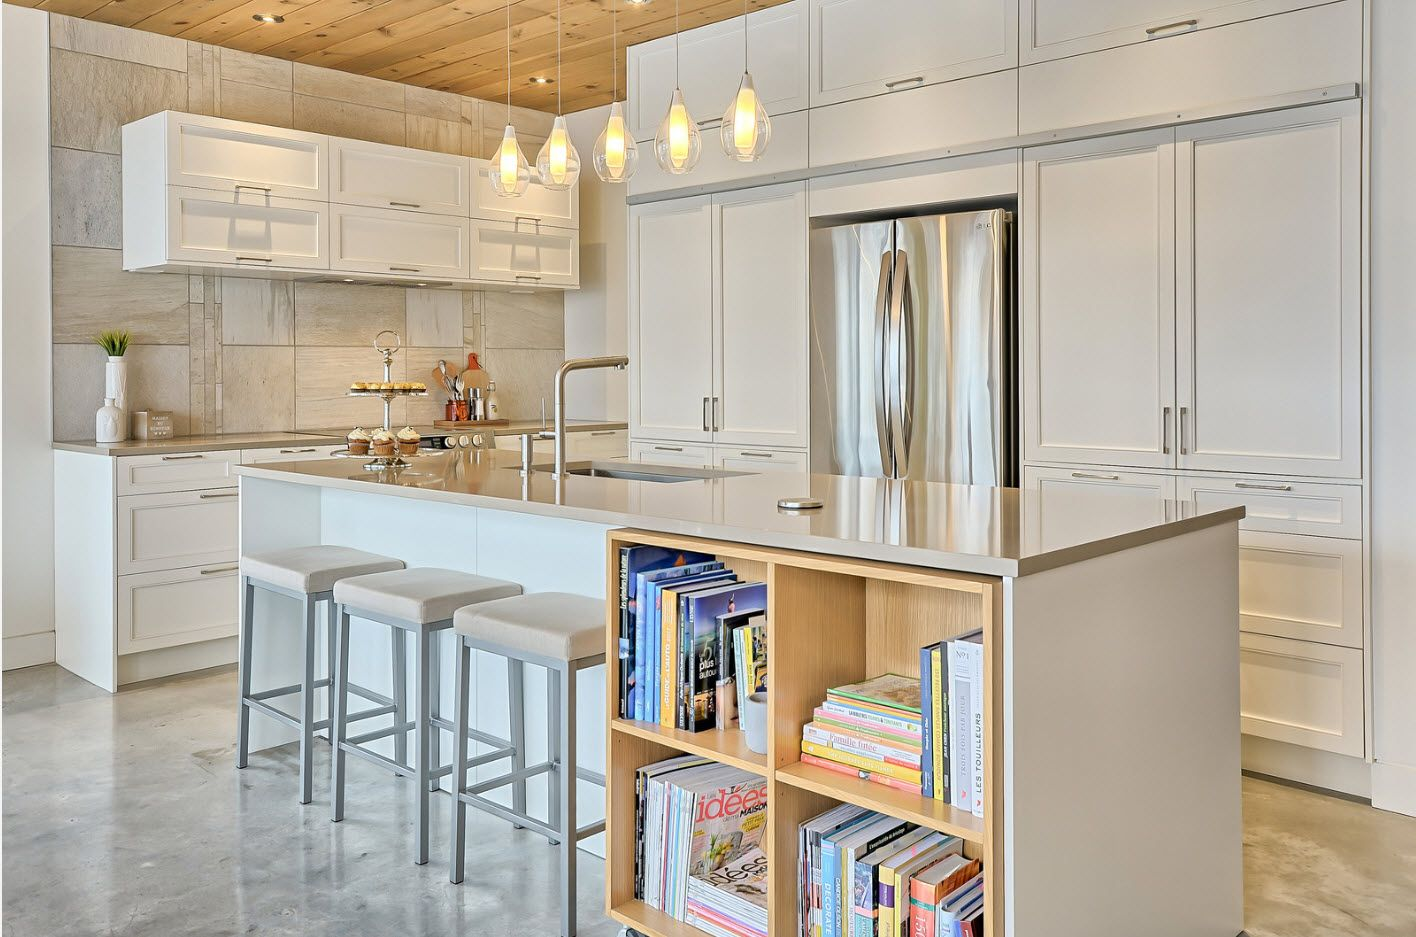 Scandi style touch in the modern Contemporary designed kitchen 2017